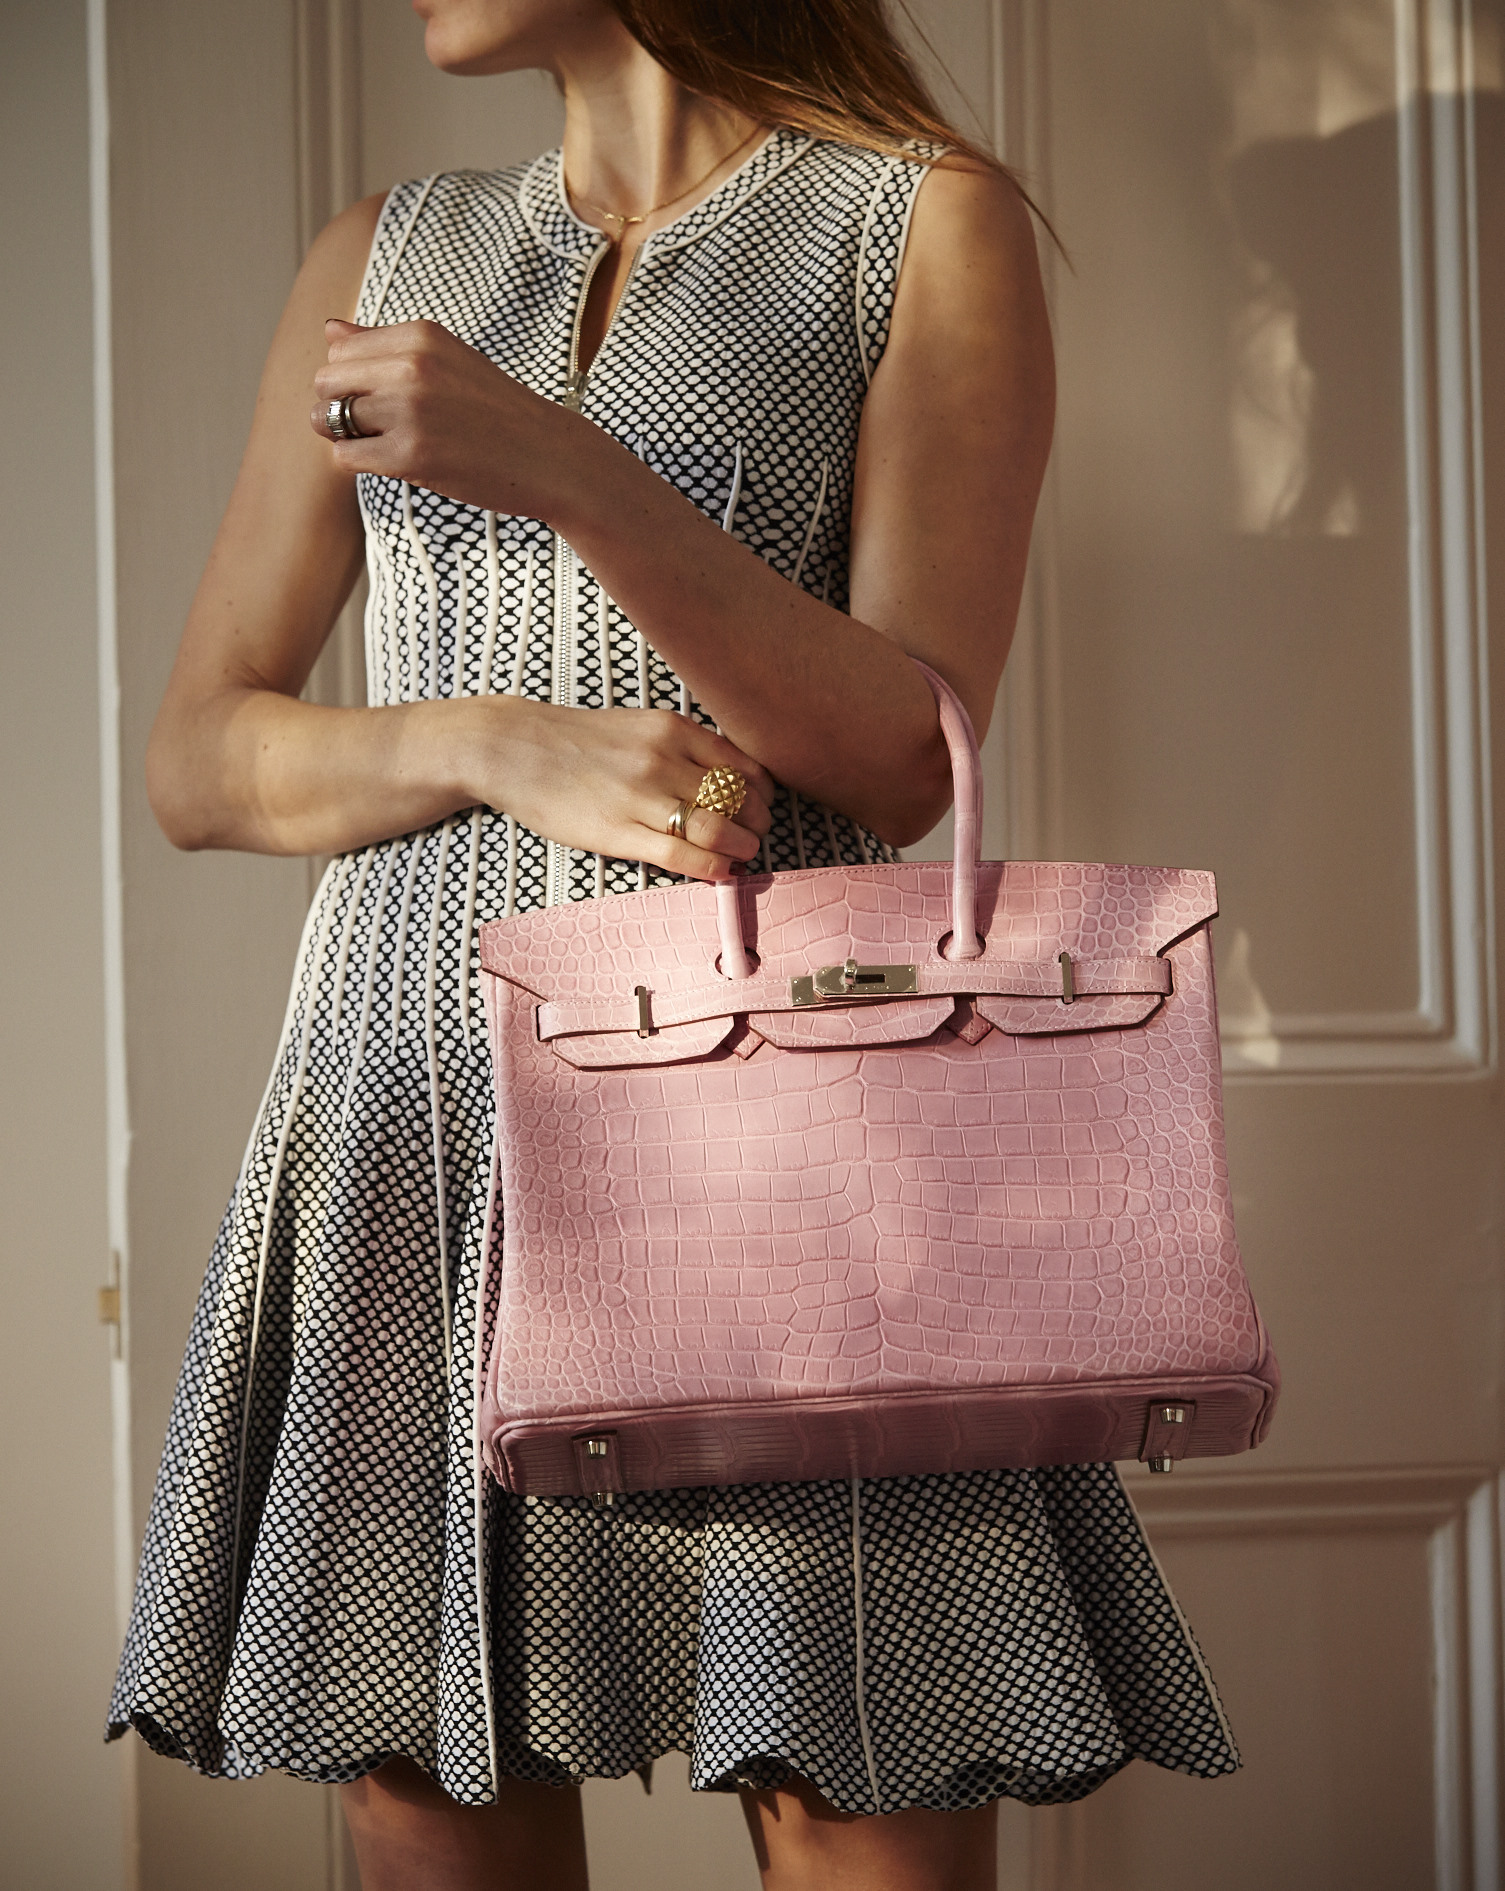 ad252d349daa The Complete Guide To Hermes Bag Styles